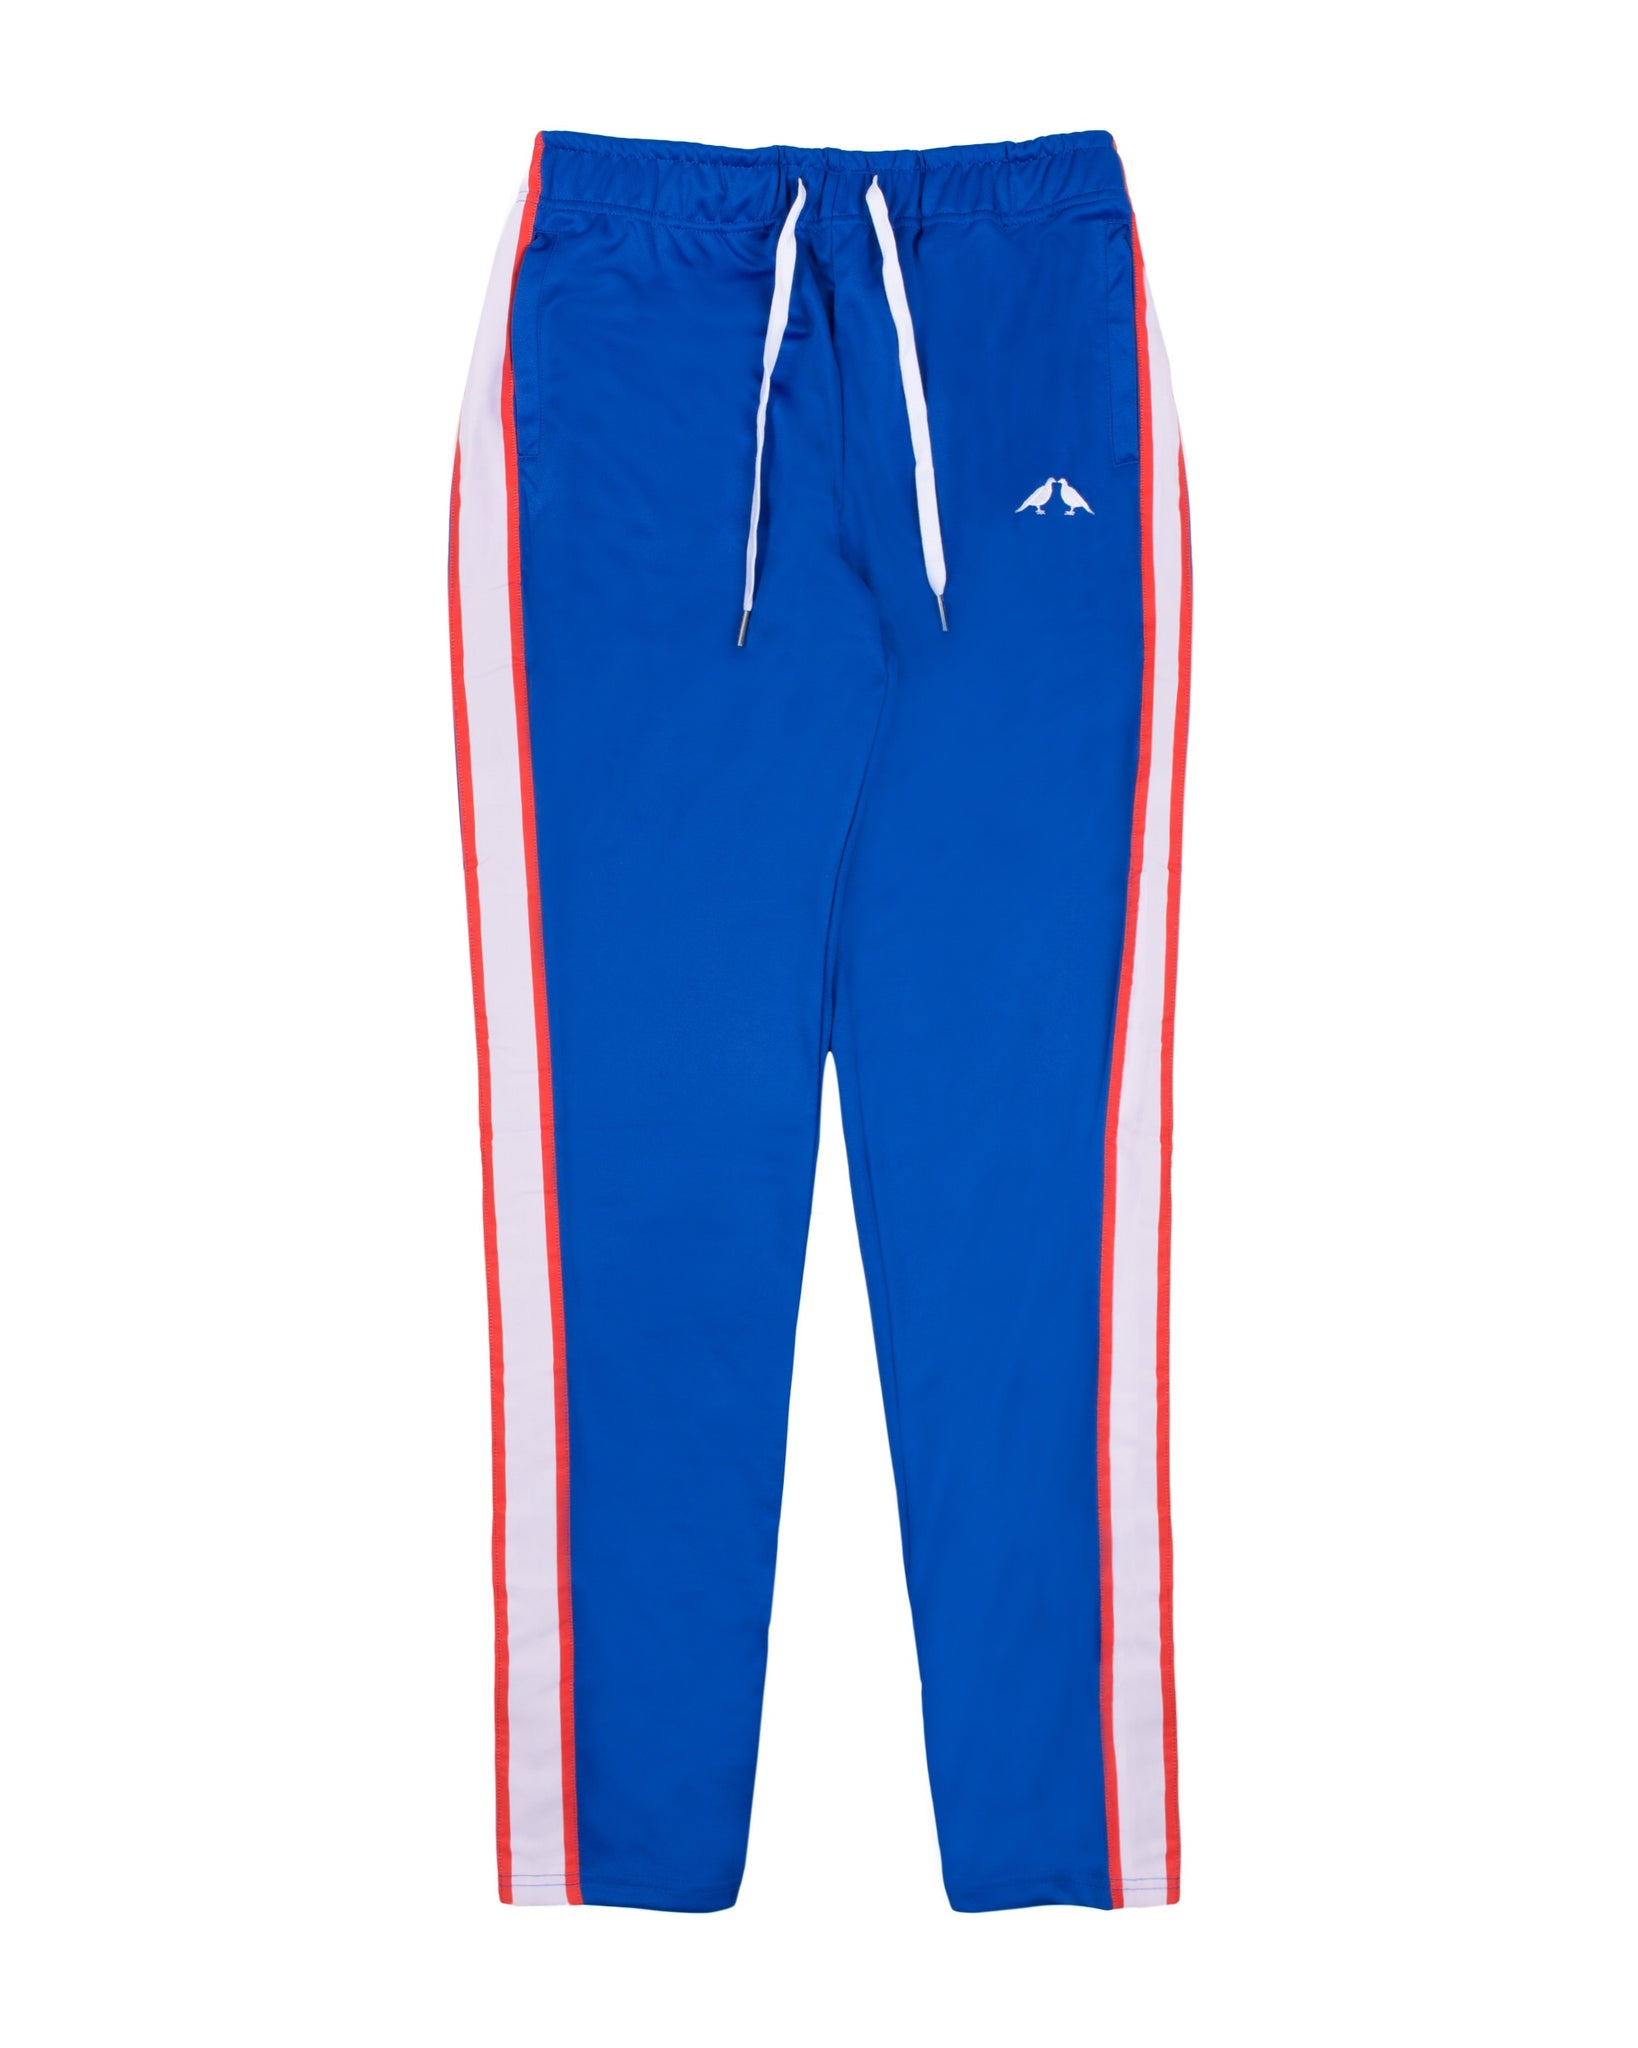 Weekend Pants (Blu)